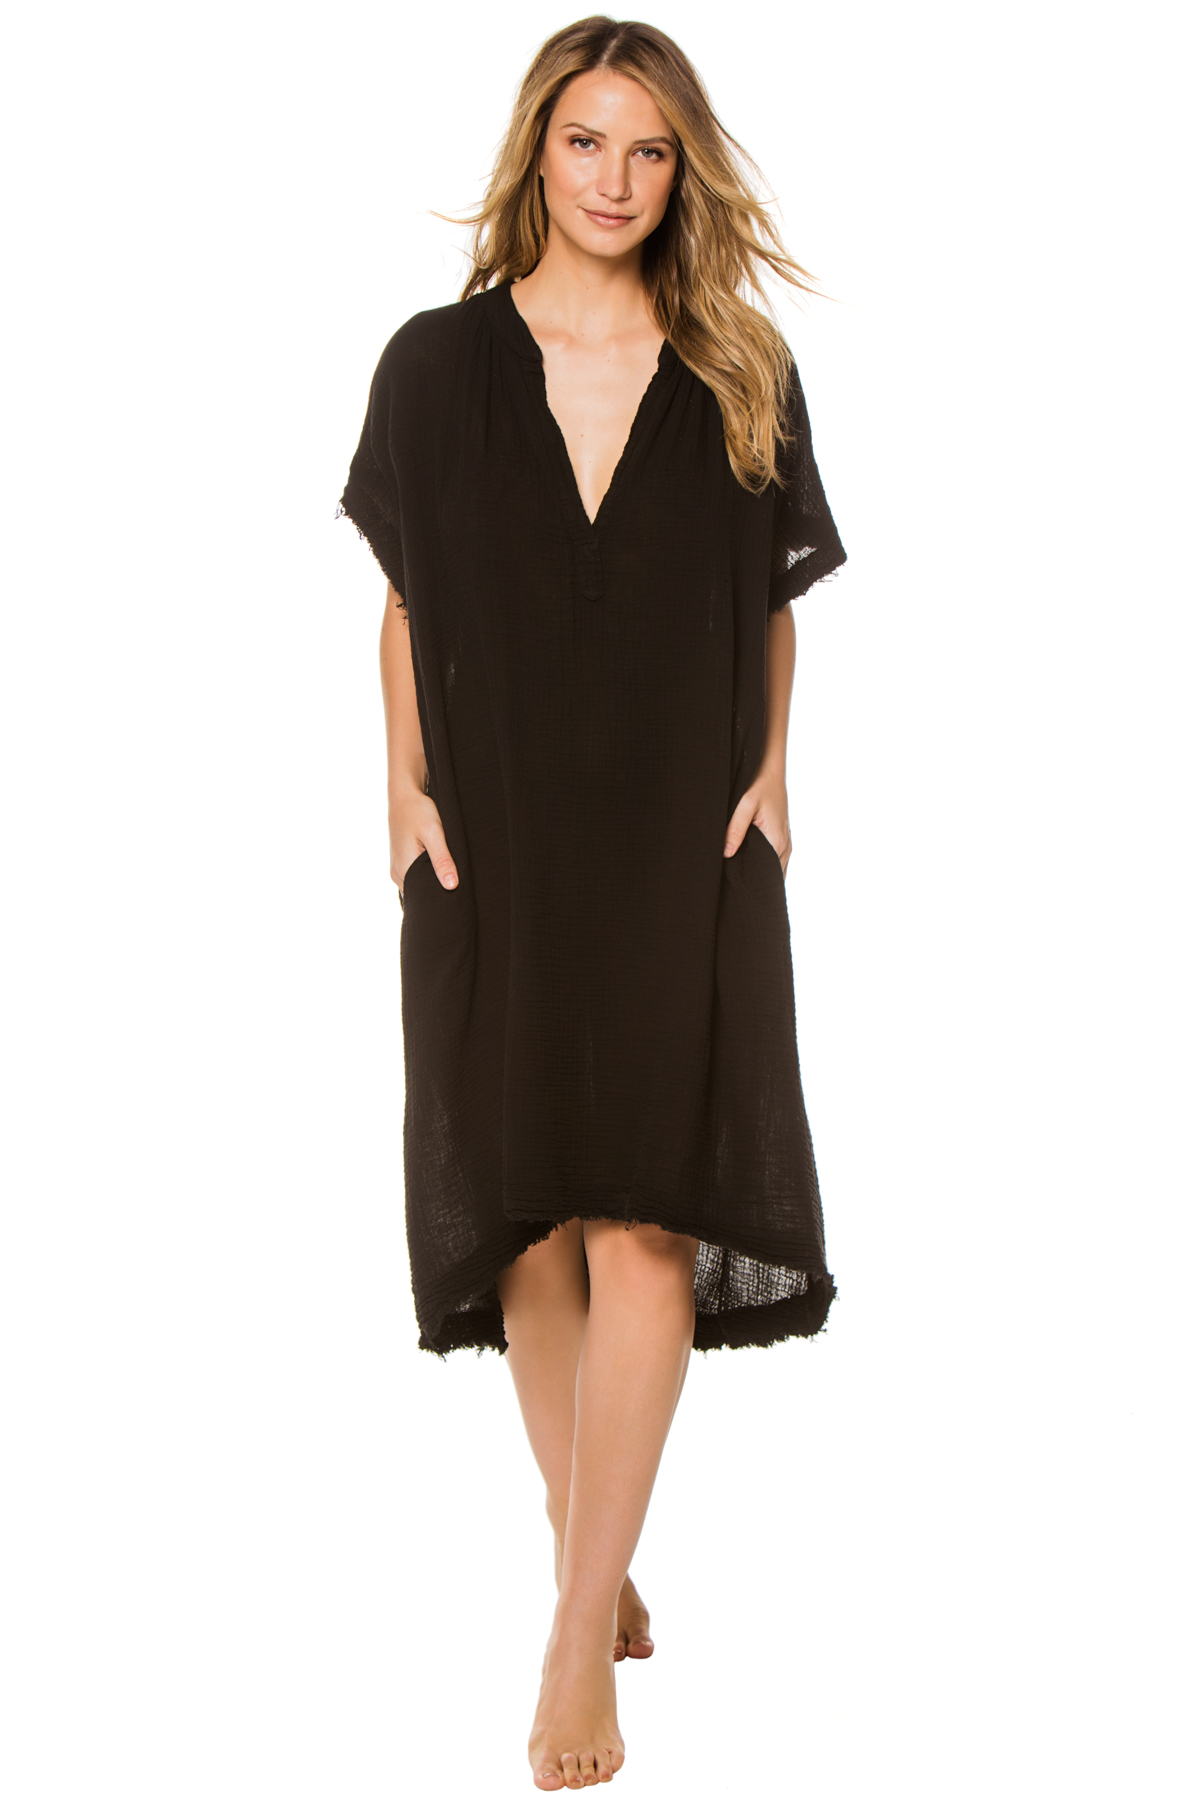 Tunisia Caftan - Black 1